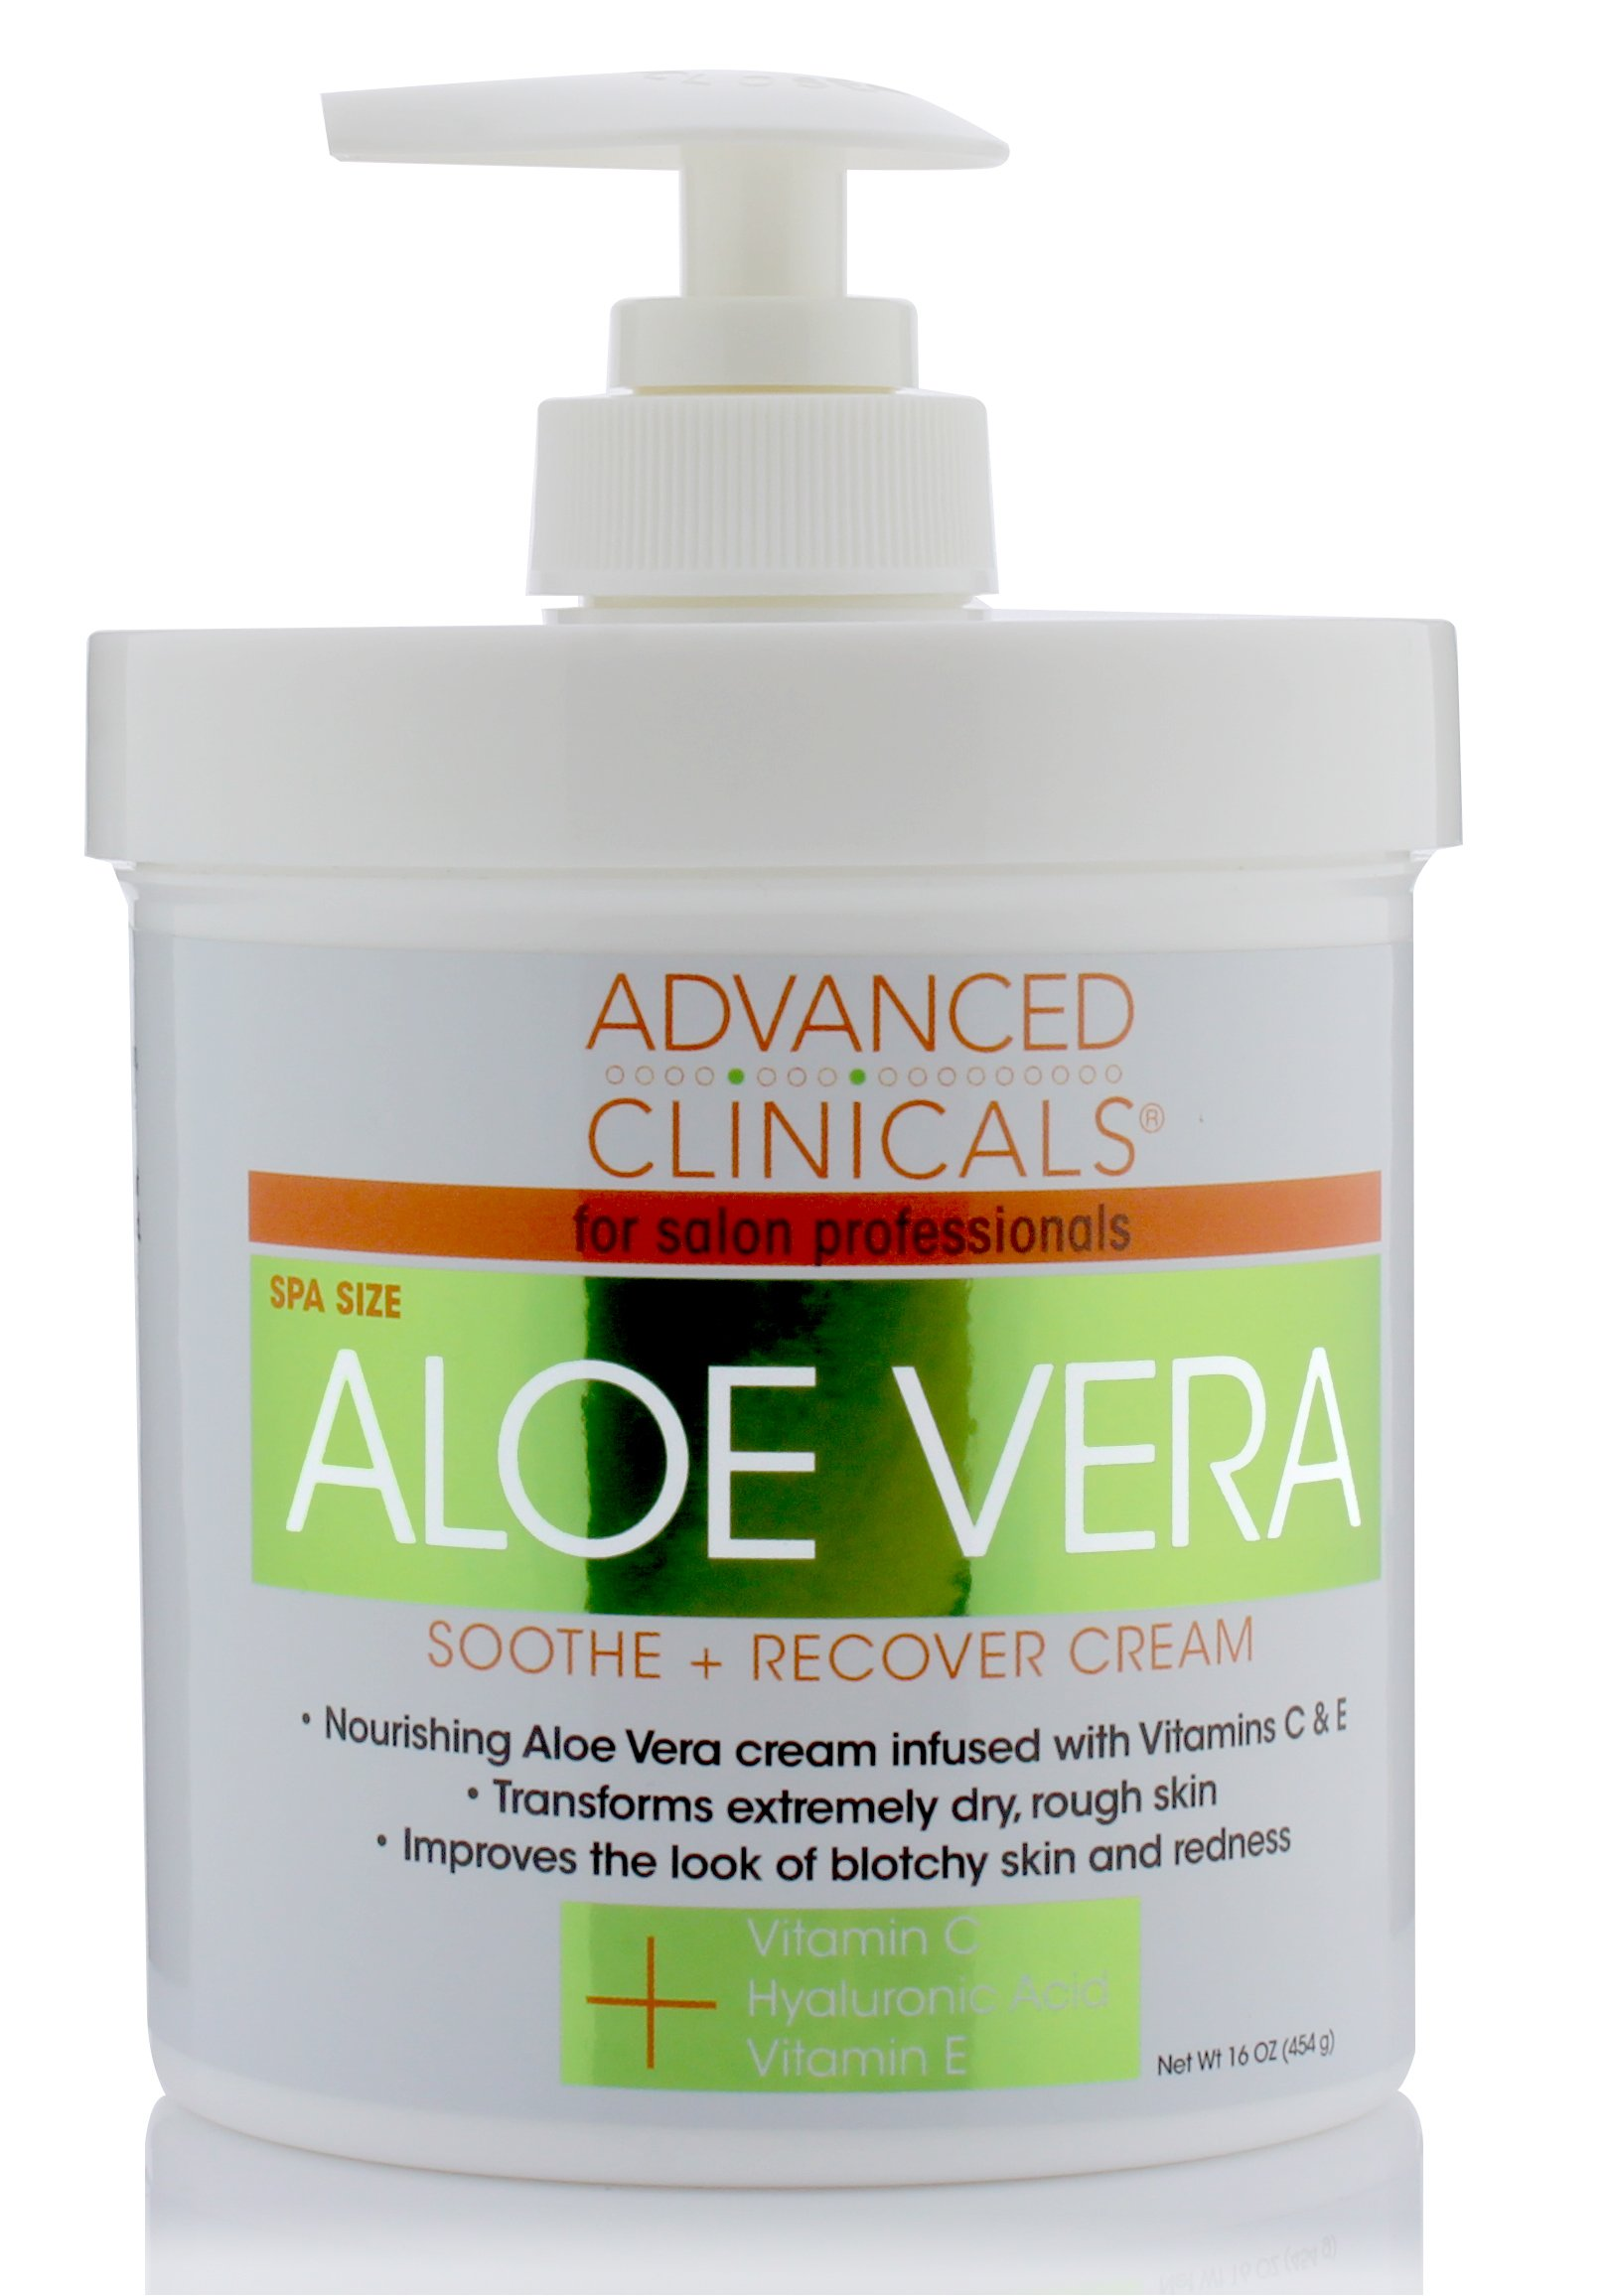 Advanced Clinicals Vitamin Hyaluronic redness